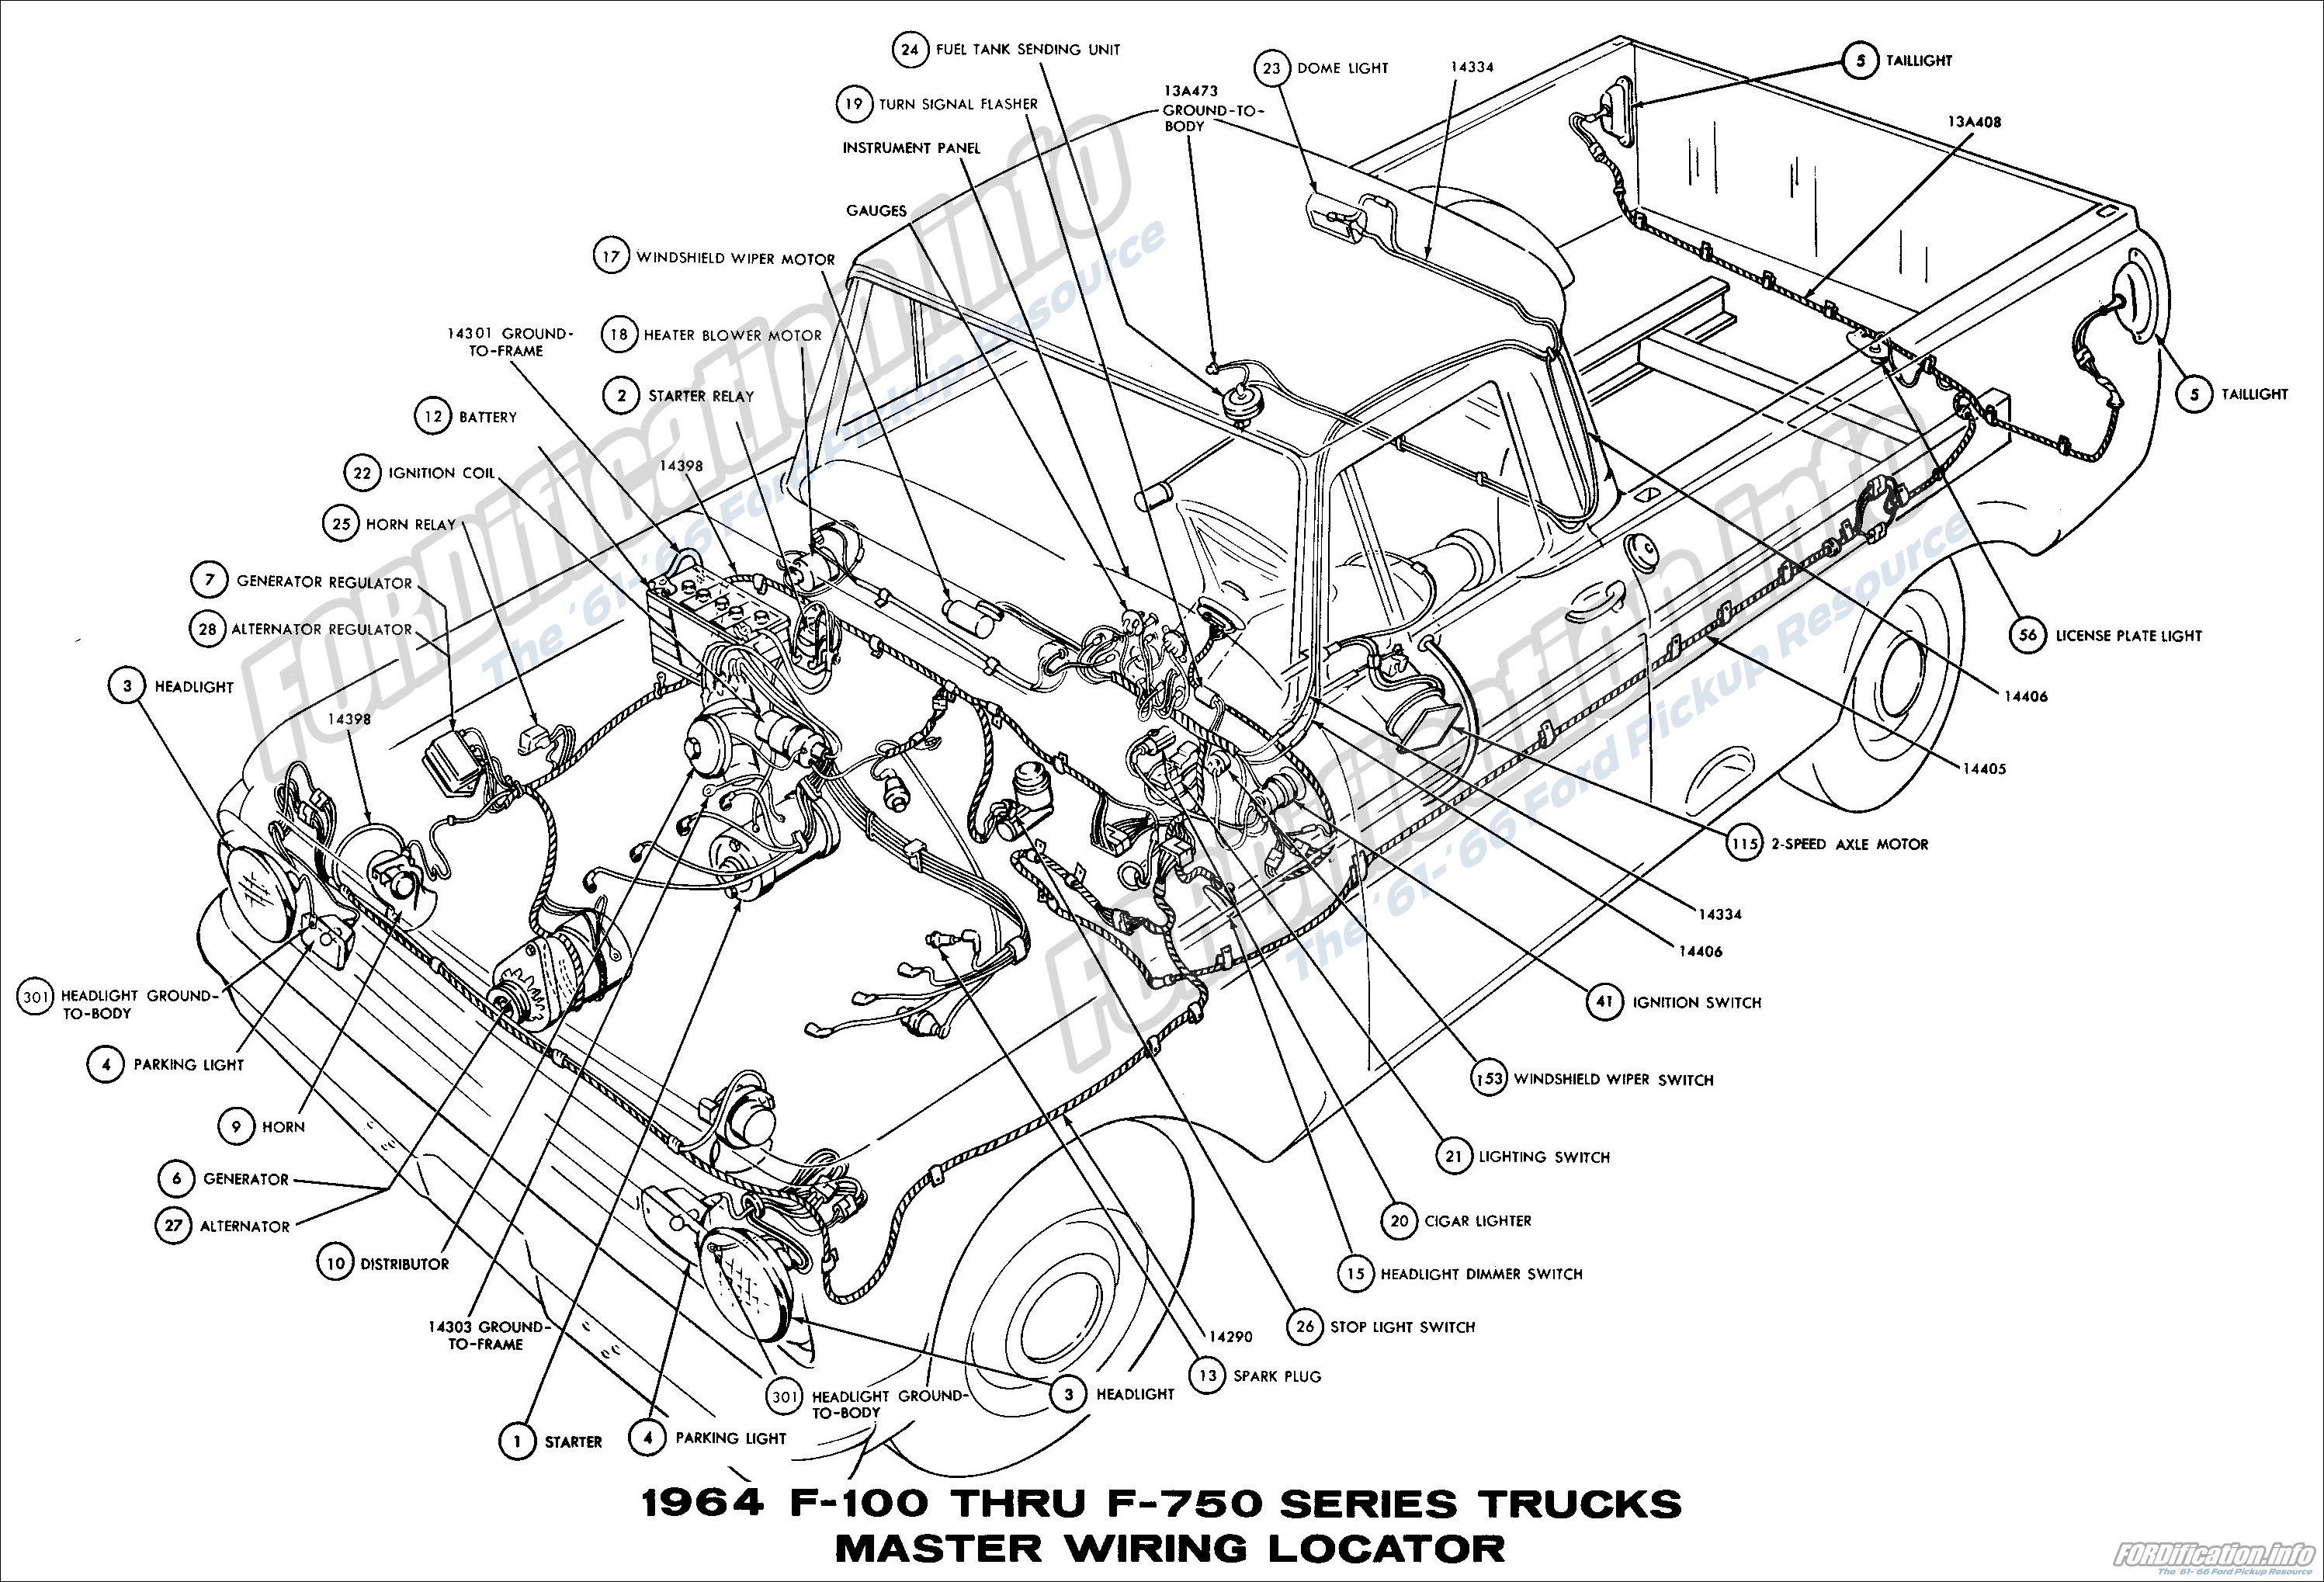 1985 Ford Ranger Heater Wiring Diagram Trusted Turn Signal 66 Pickup Basic Guide U2022 Fuse Panel